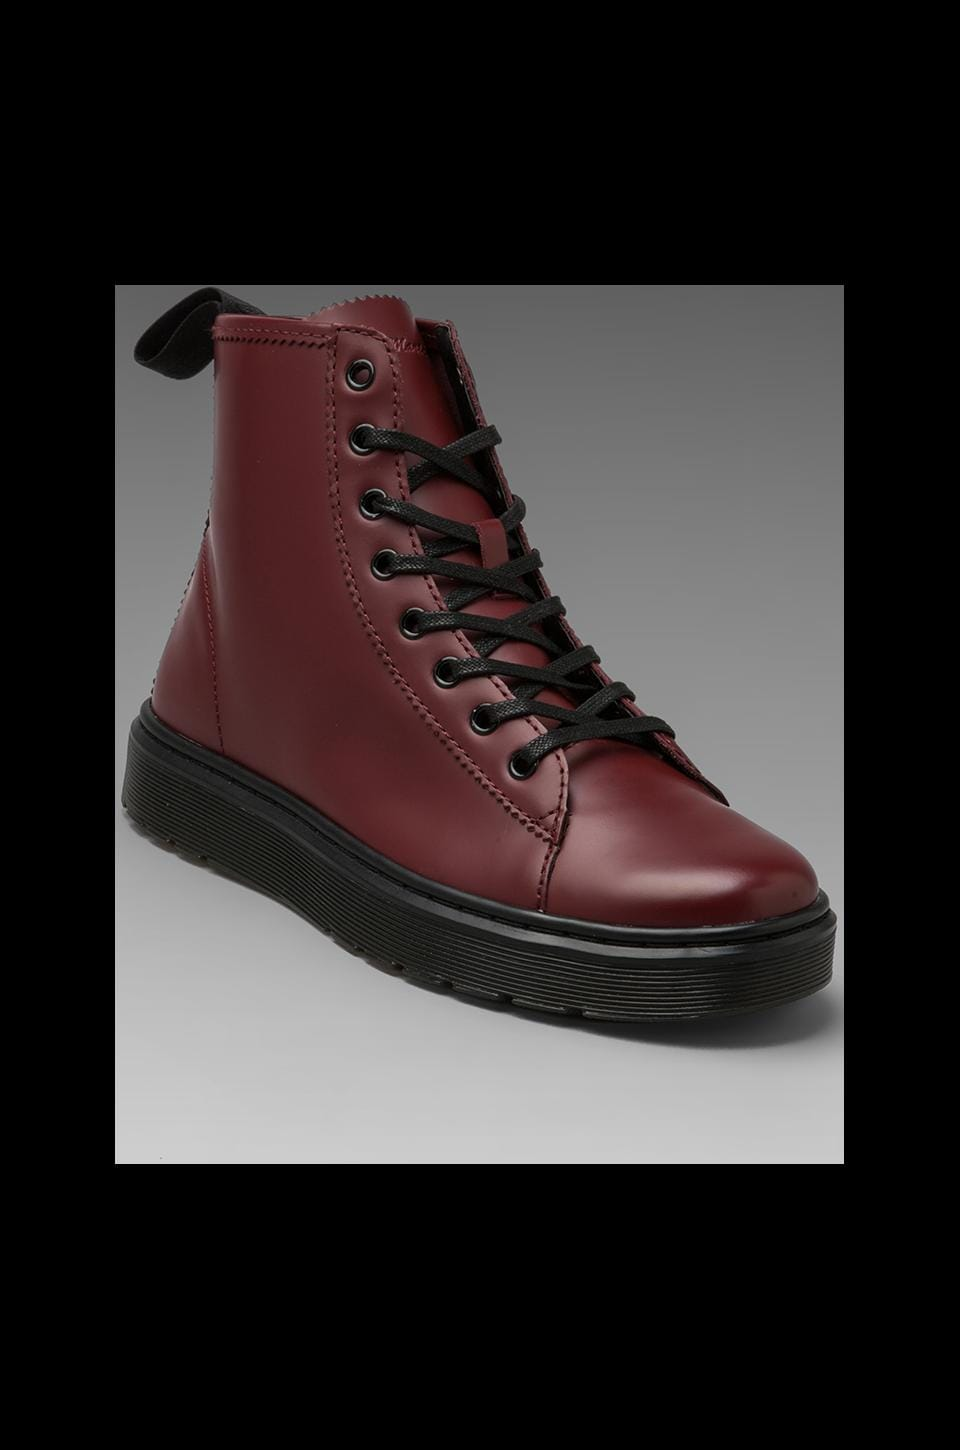 Dr. Martens Mayer Lace to Toe Boot in Cherry Red